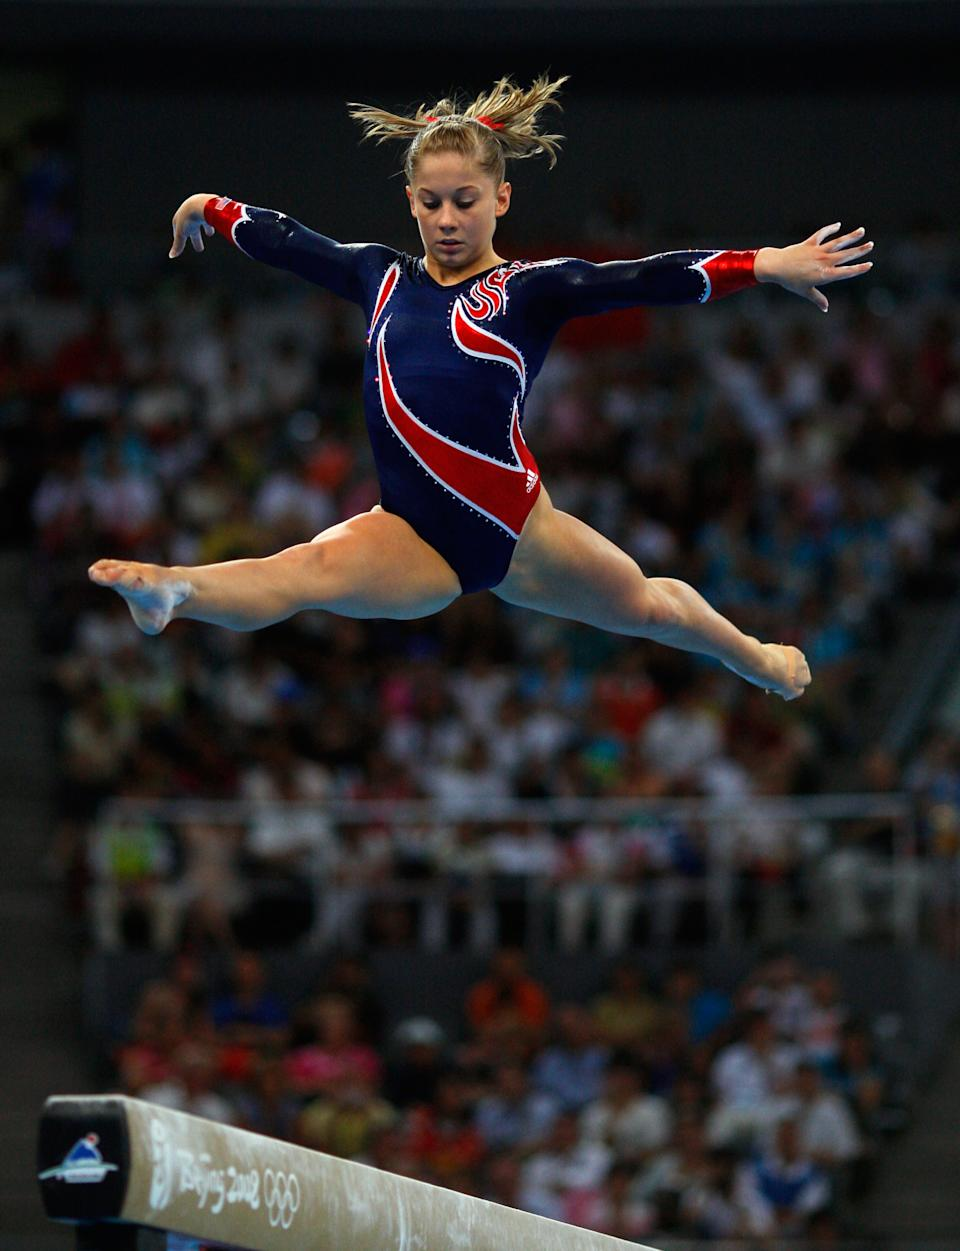 BEIJING - AUGUST 19: Shawn Johnson of the Untied States competes in the Women's Beam Final at the National Indoor Stadium on Day 11 of the Beijing 2008 Olympic Games on August 19, 2008 in Beijing, China. (Photo by Cameron Spencer/Getty Images)